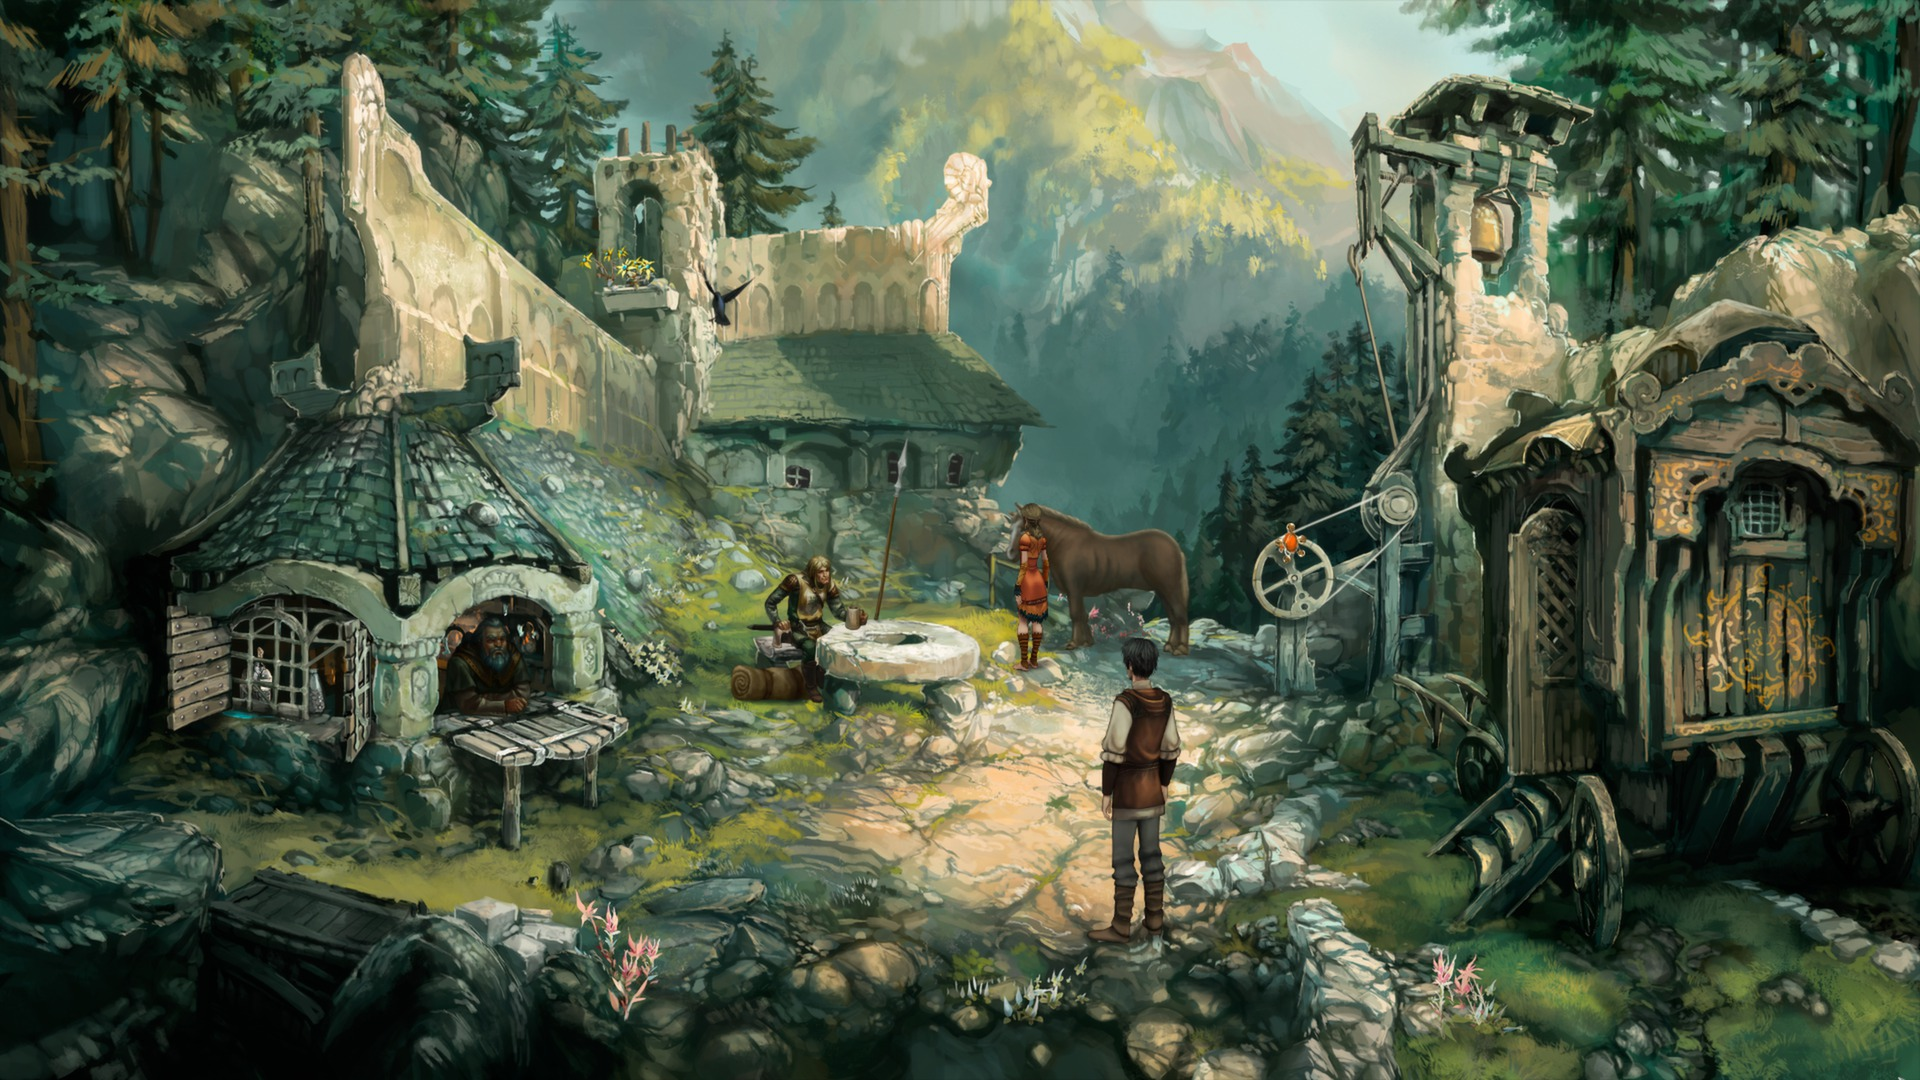 Screenshot from The Dark Eye: Chains of Satinav Featuring A Lushly Hand-painted Town